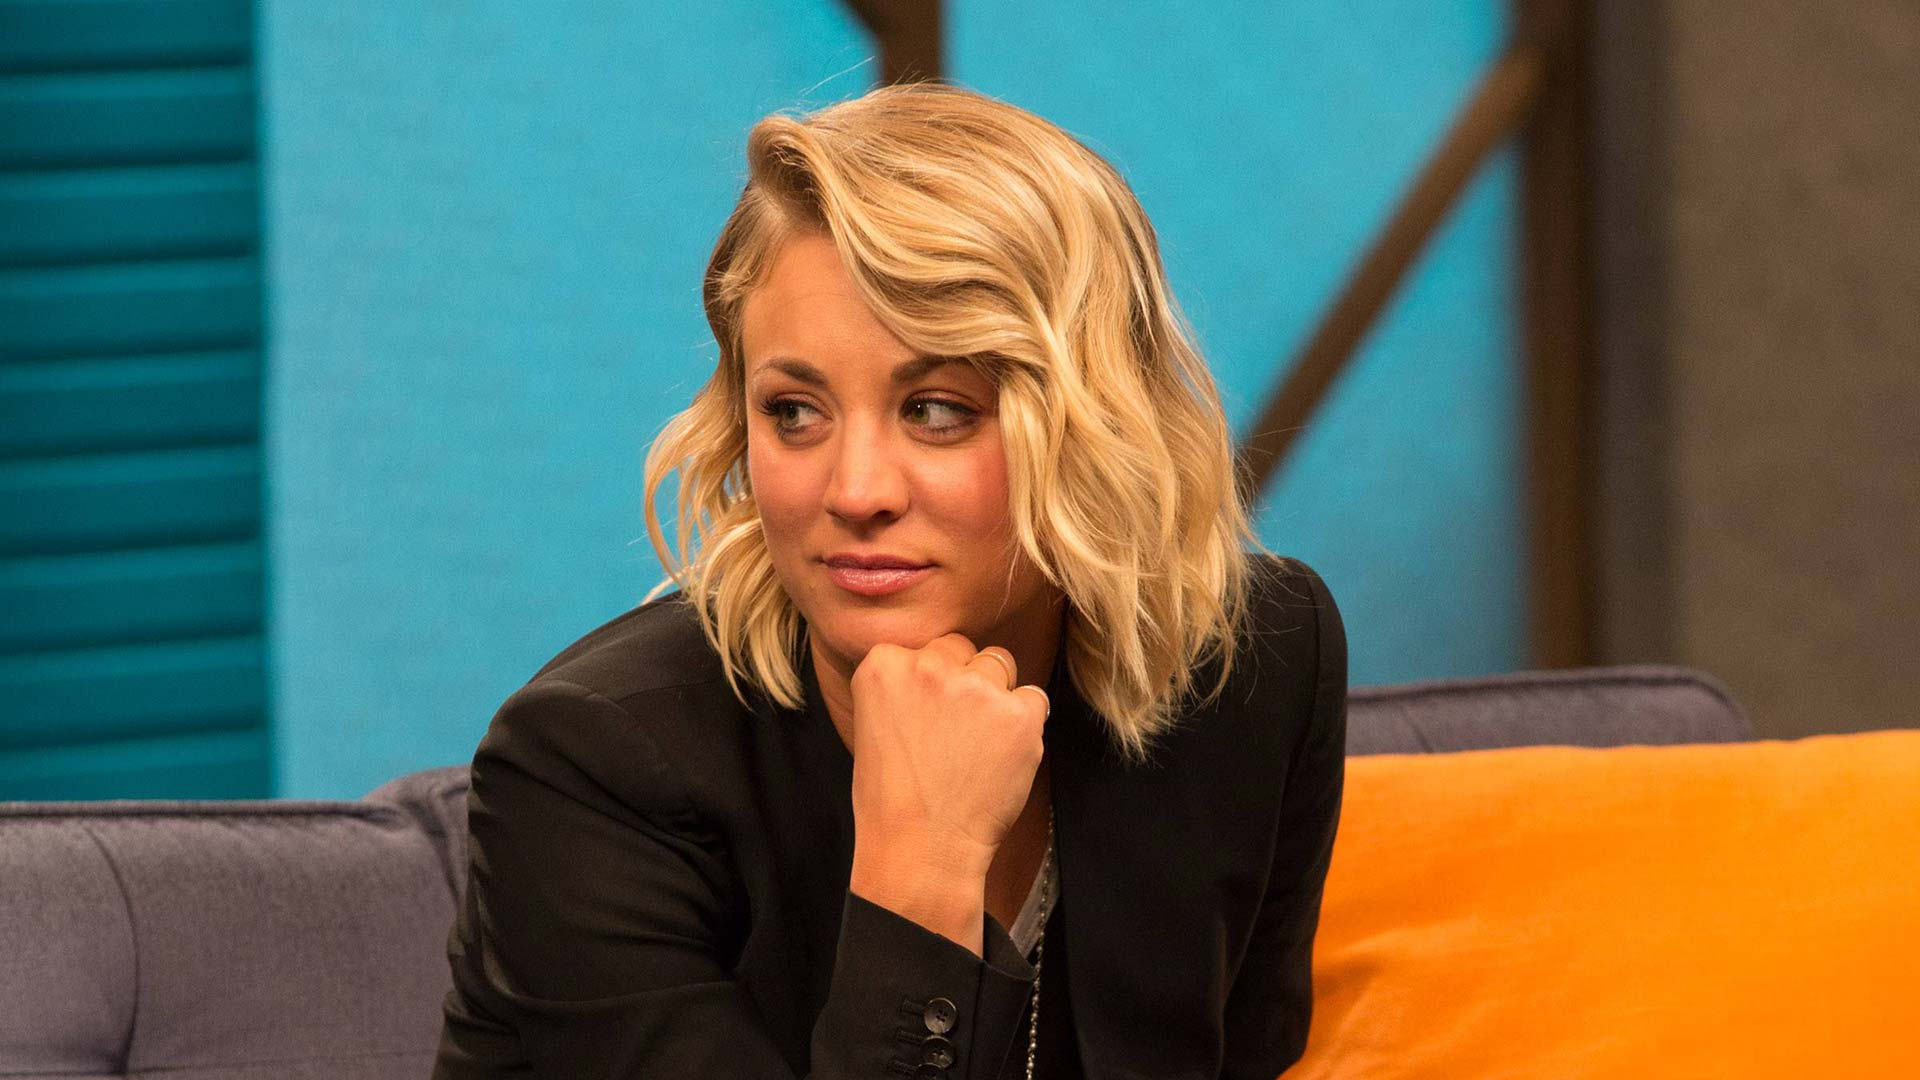 Kaley Cuoco Wears A Black Blazer And Slip On Sneakers Ifc